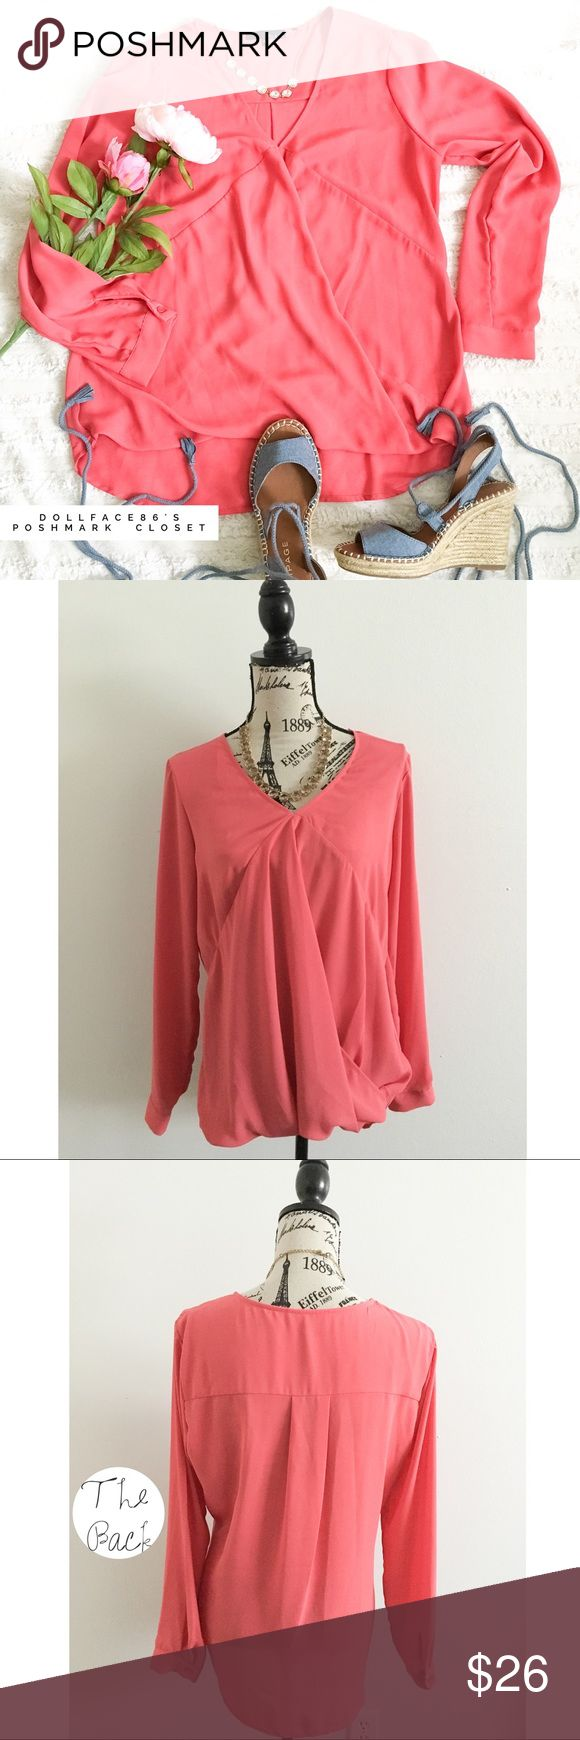 """Anthro Ro+De Coral Pink Surplice Top ✦   ✦{I am not a professional photographer, actual color of item may vary ➾slightly from pics}  ❥chest:20.5"""" ❥waist:22"""" ❥length:26"""" ❥sleeves:24""""  ➳material/care:tag cut feels like polyester light & breathable, no stretch  ➳fit:true  ➳condition:gently used   ✦20% off bundles of 3/more items ✦No Trades  ✦NO HOLDS ✦No transactions outside Poshmark  ✦No lowball offers/sales are final Anthropologie Tops Blouses"""